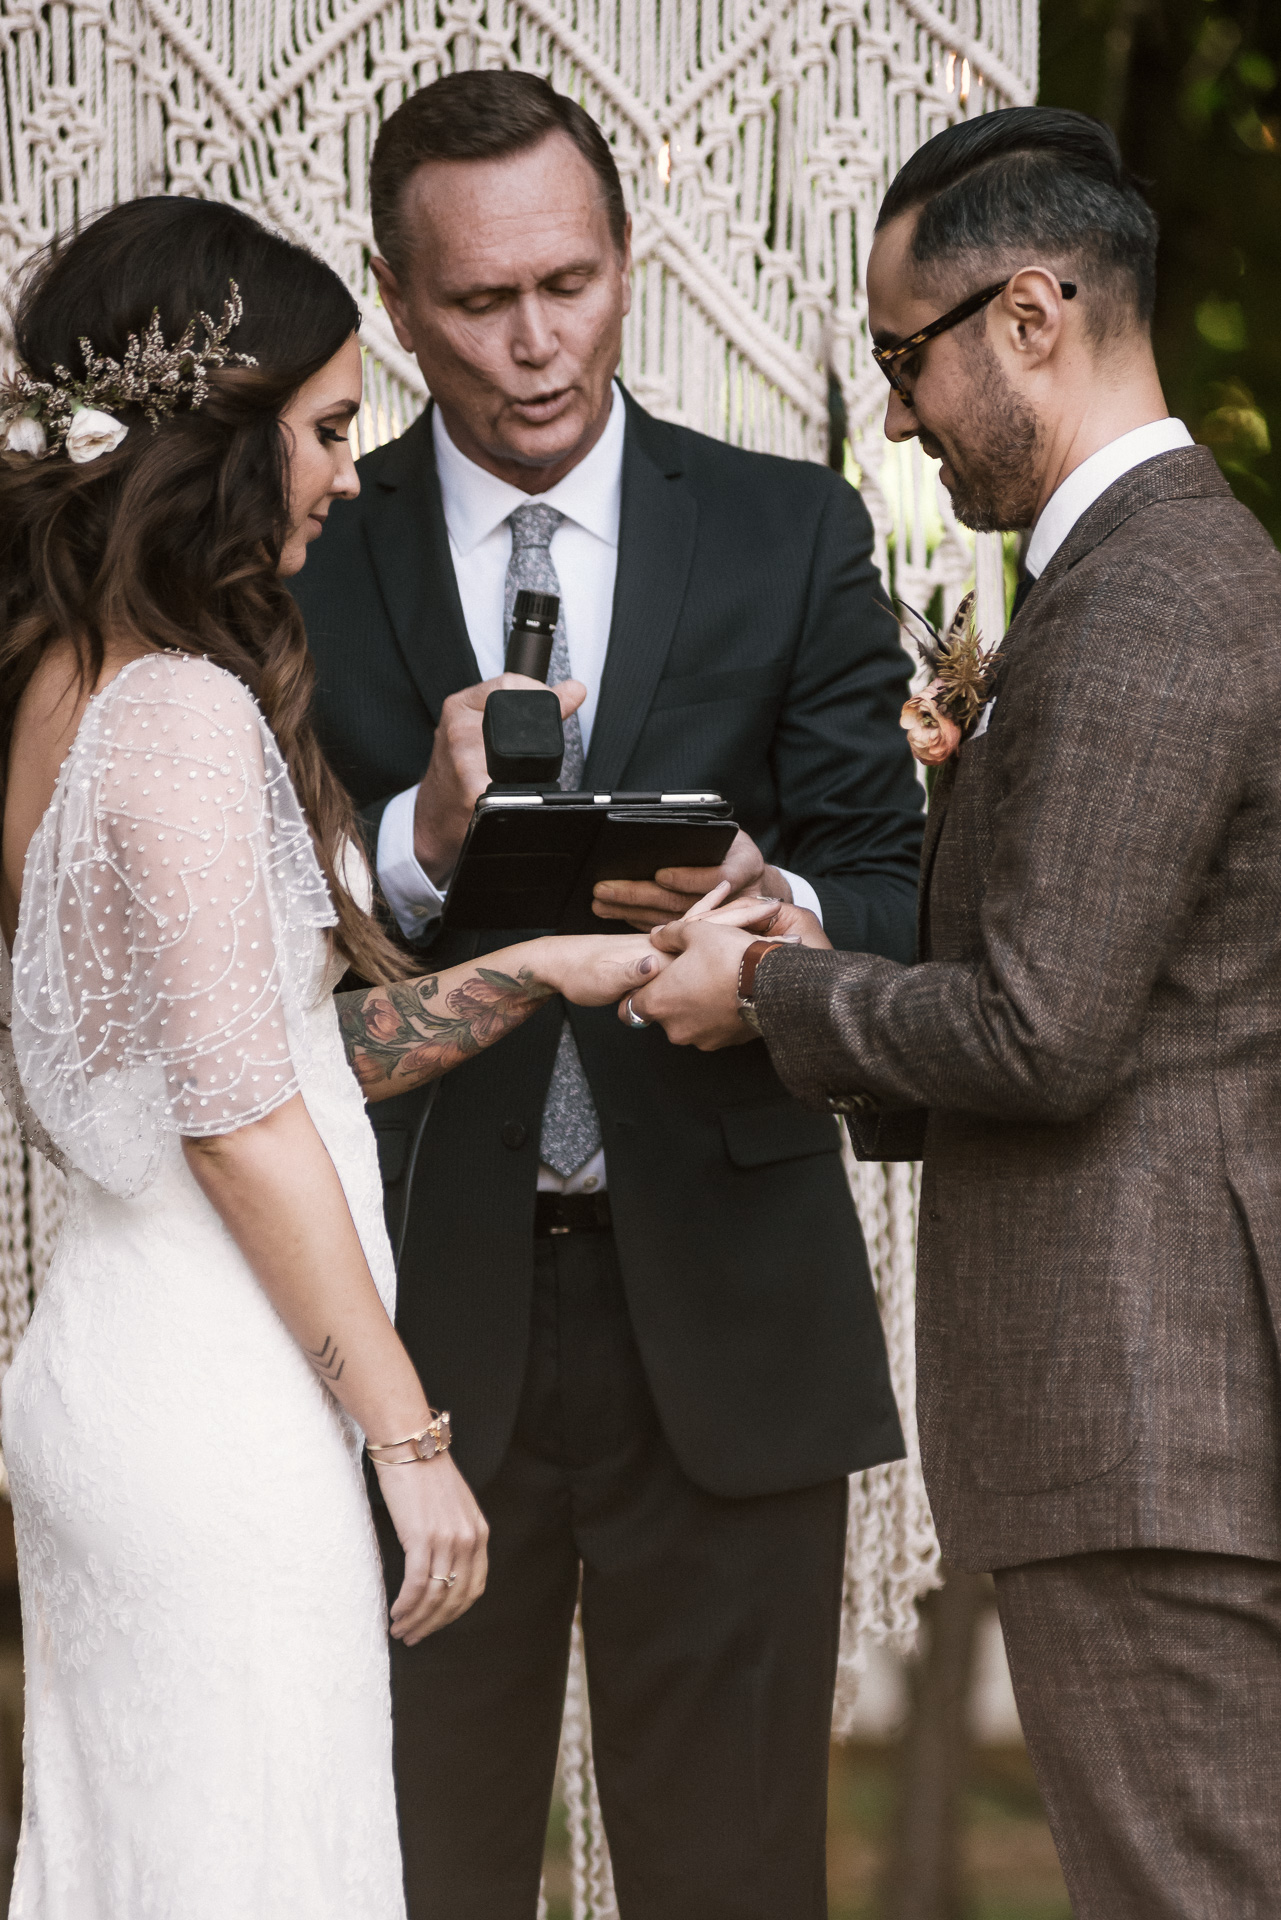 bride recieves her wedding ring shot by wedding photographer at the charming St. George Hotel in Volcano California